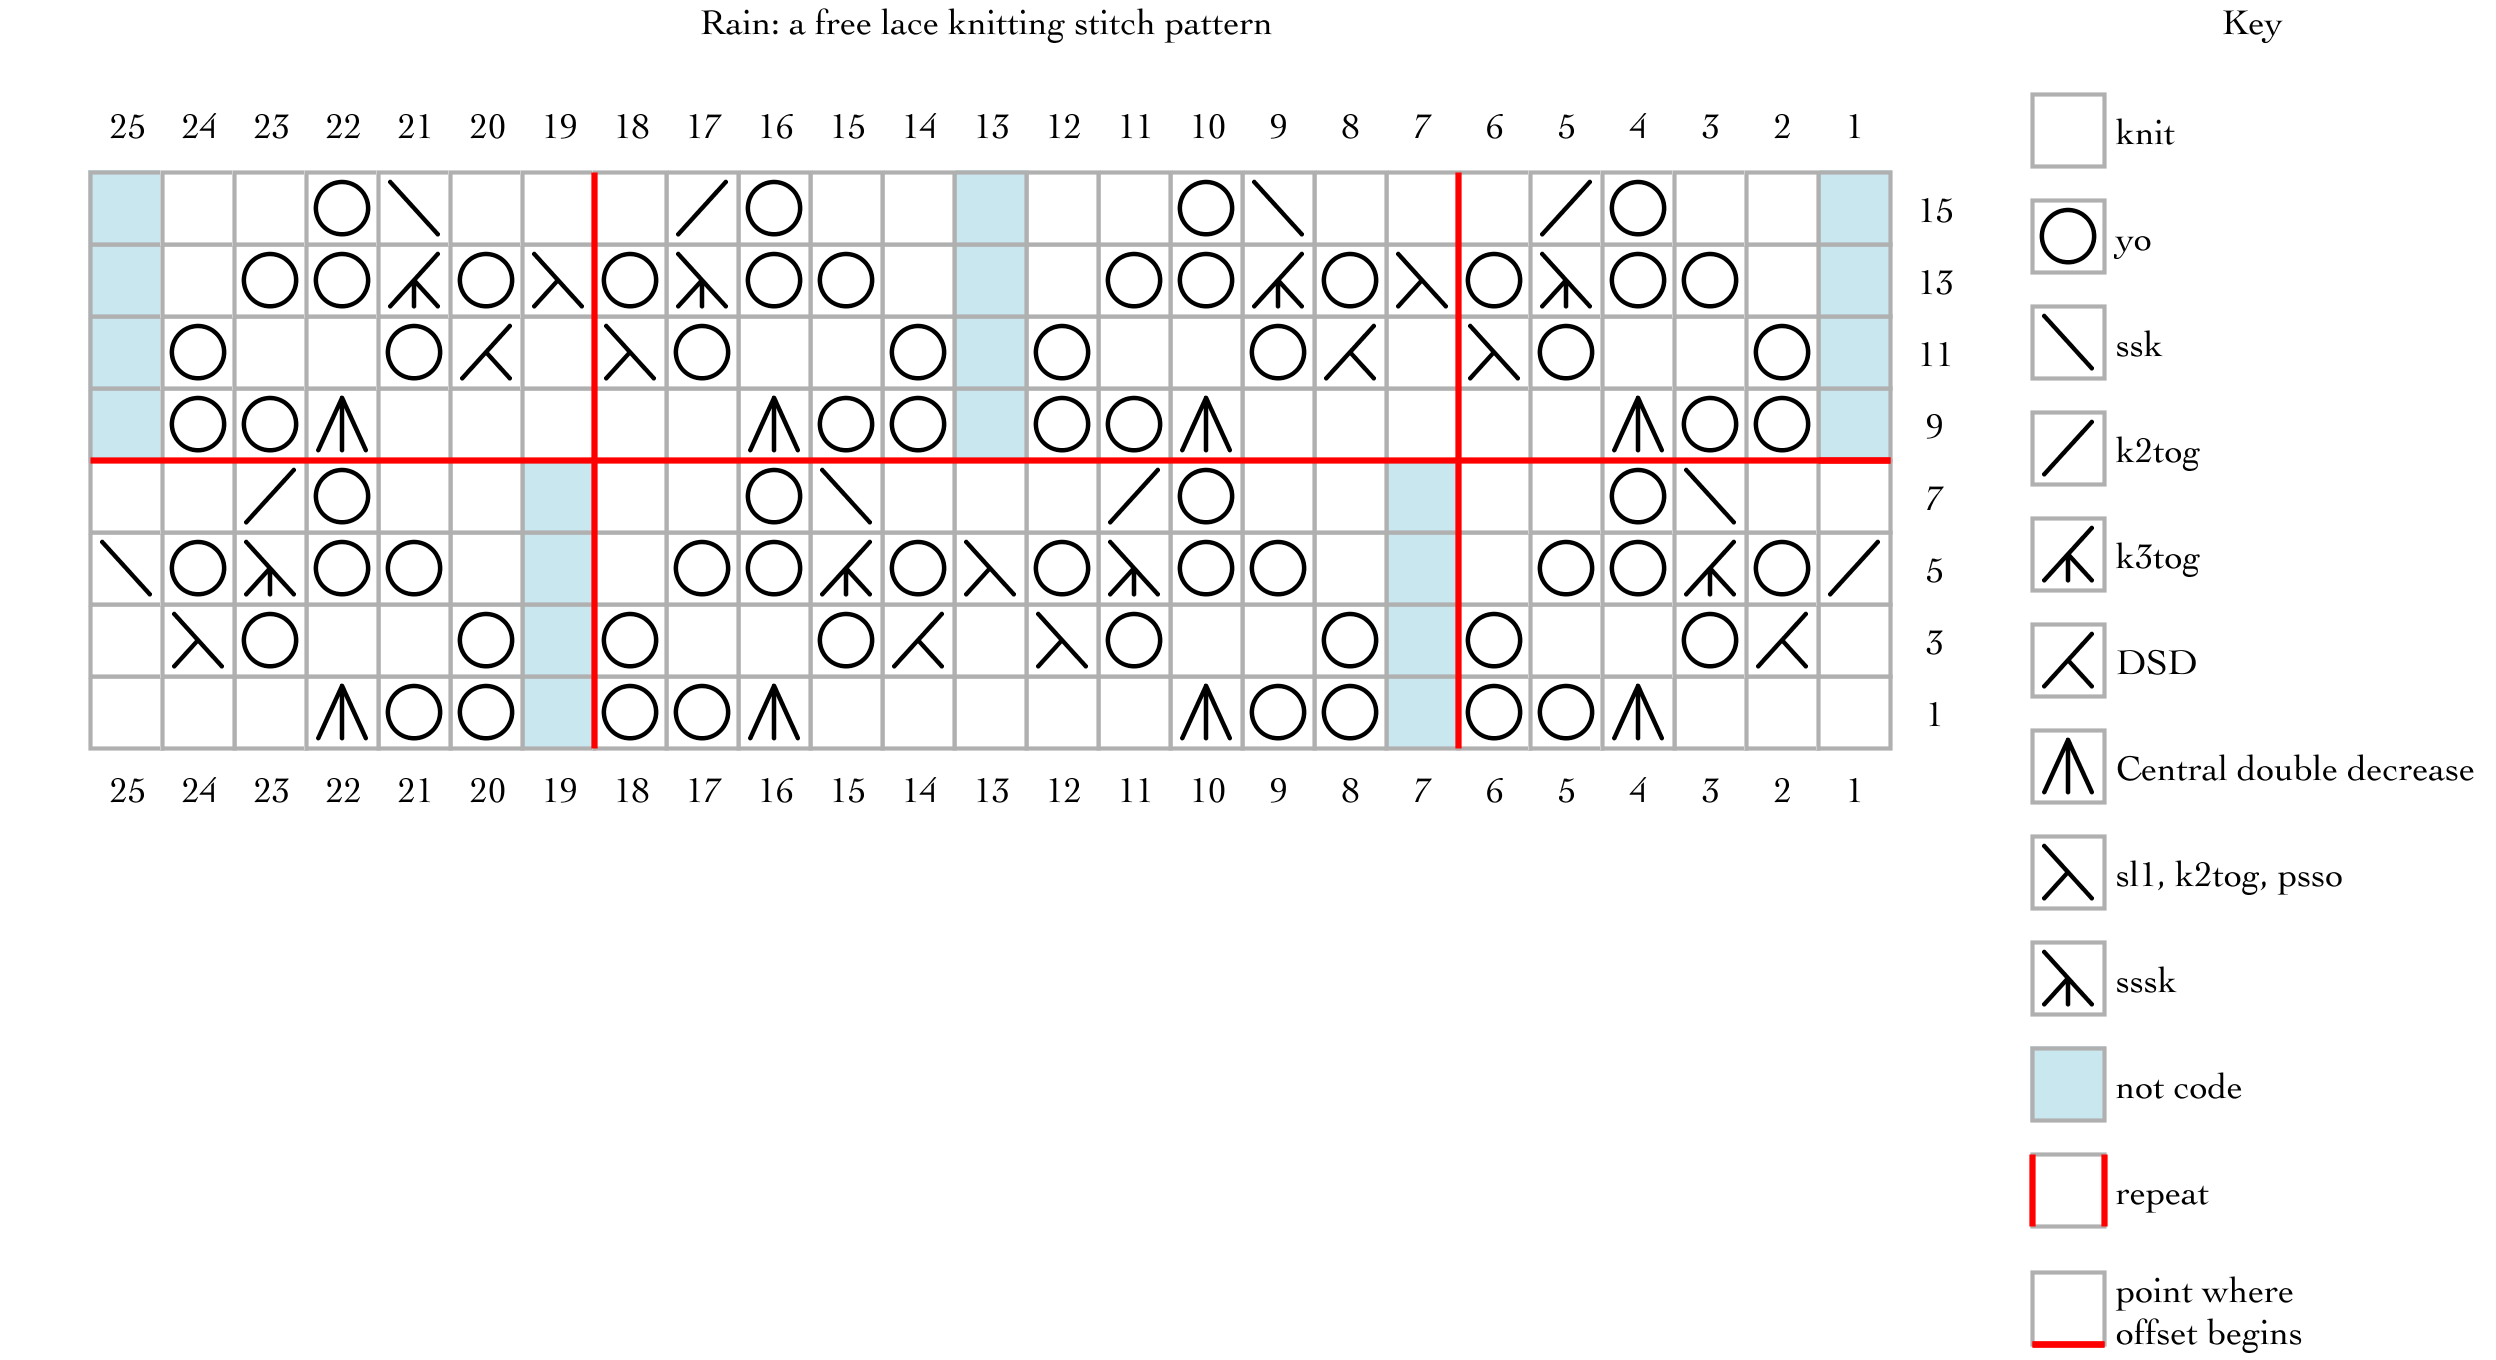 chart for Rain: a free lace knitting stitch pattern